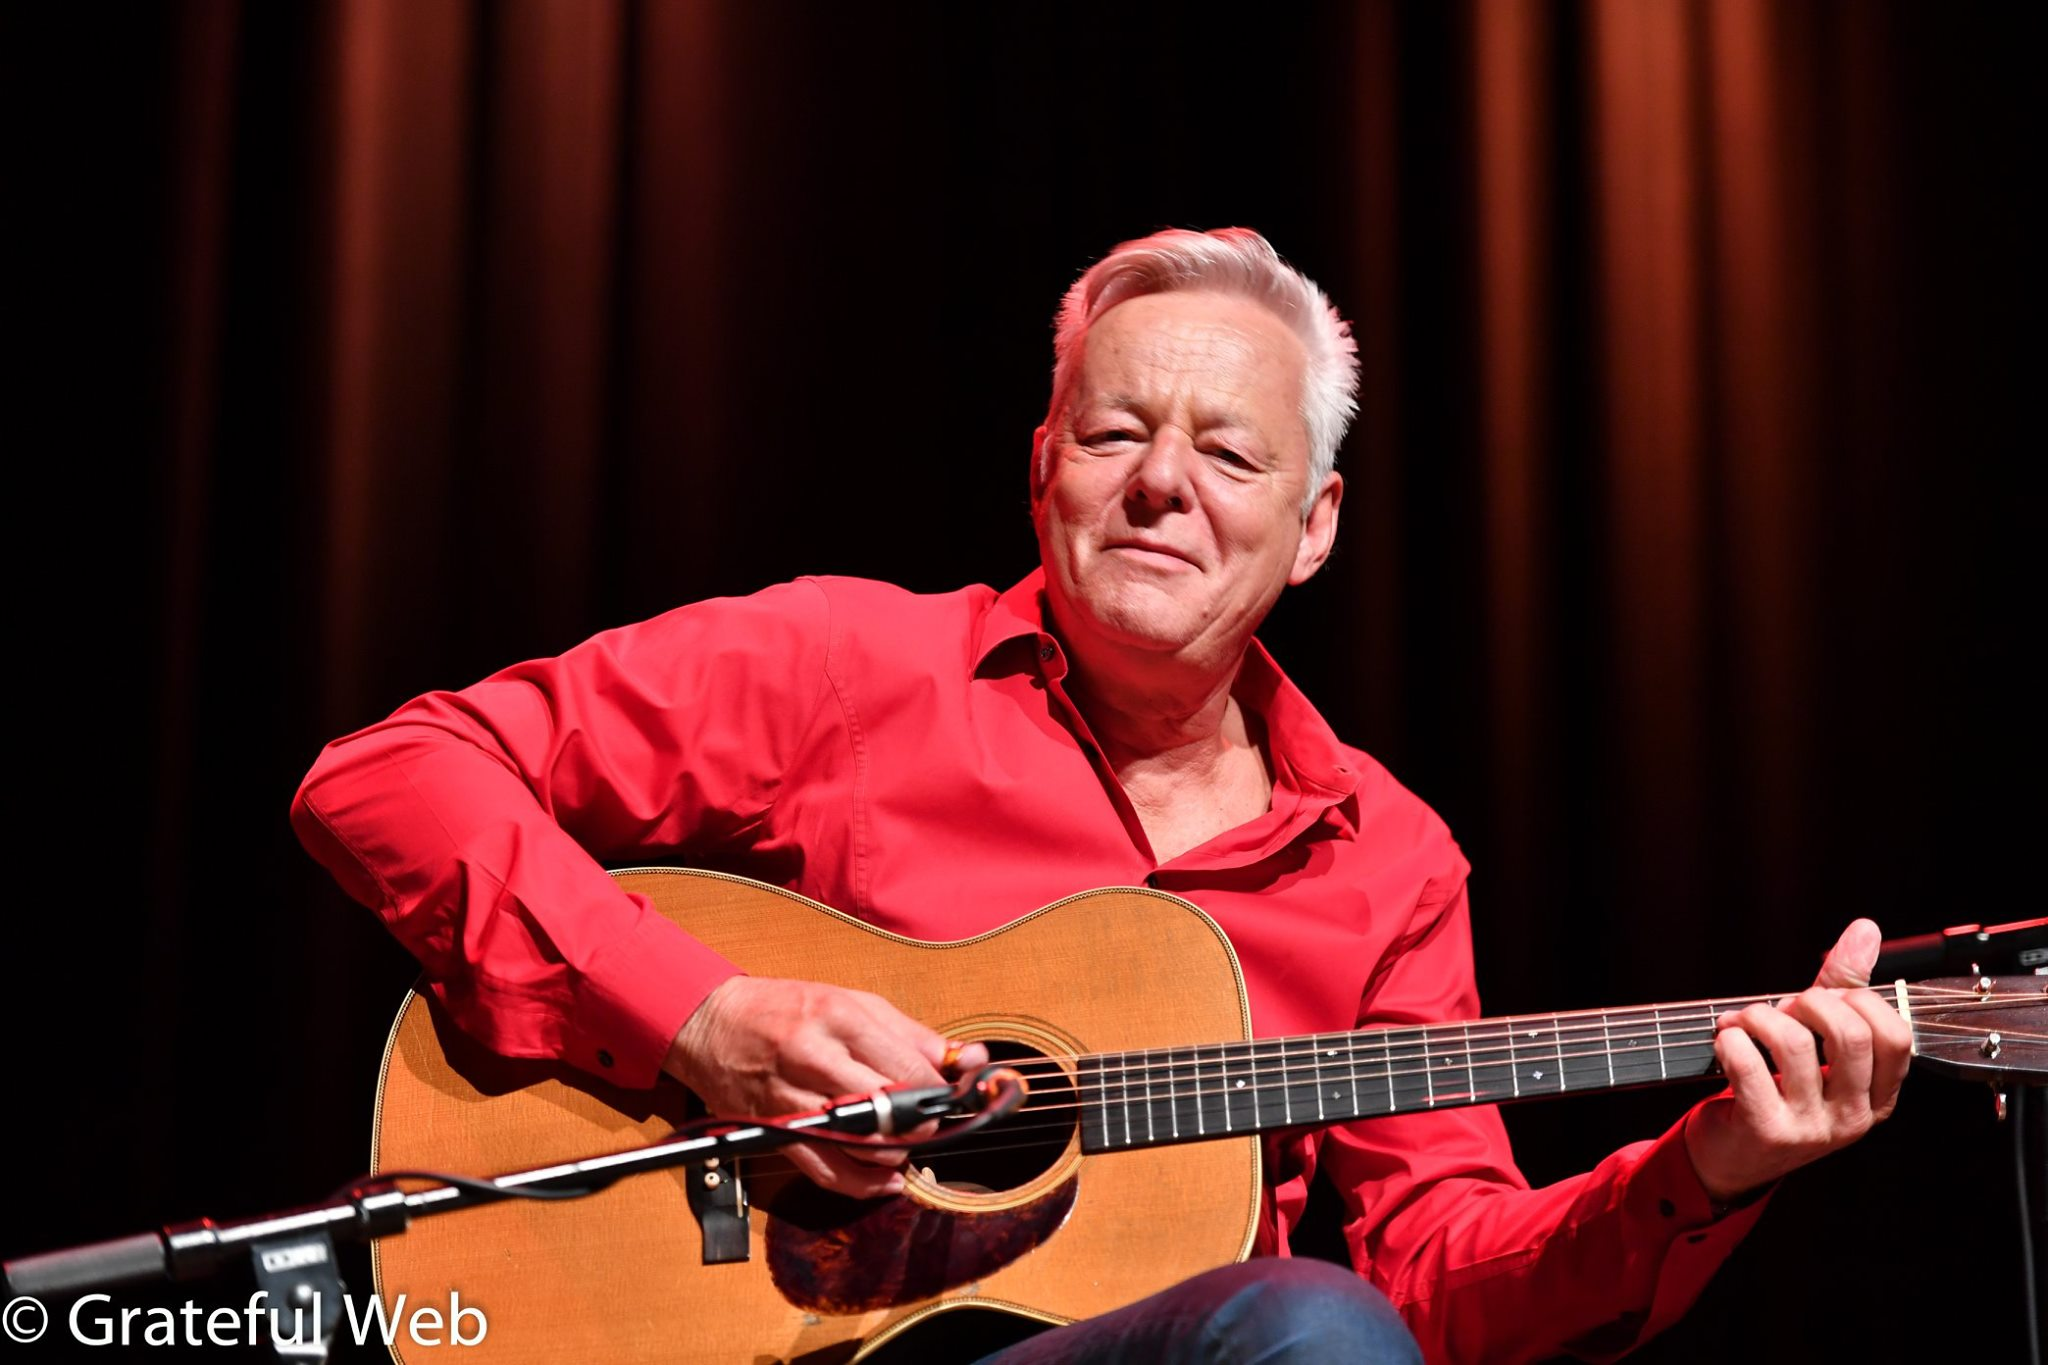 TOMMY EMMANUEL To Host Two Live Stream Events With Portion Of Proceeds Benefiting Two Indie Venues: